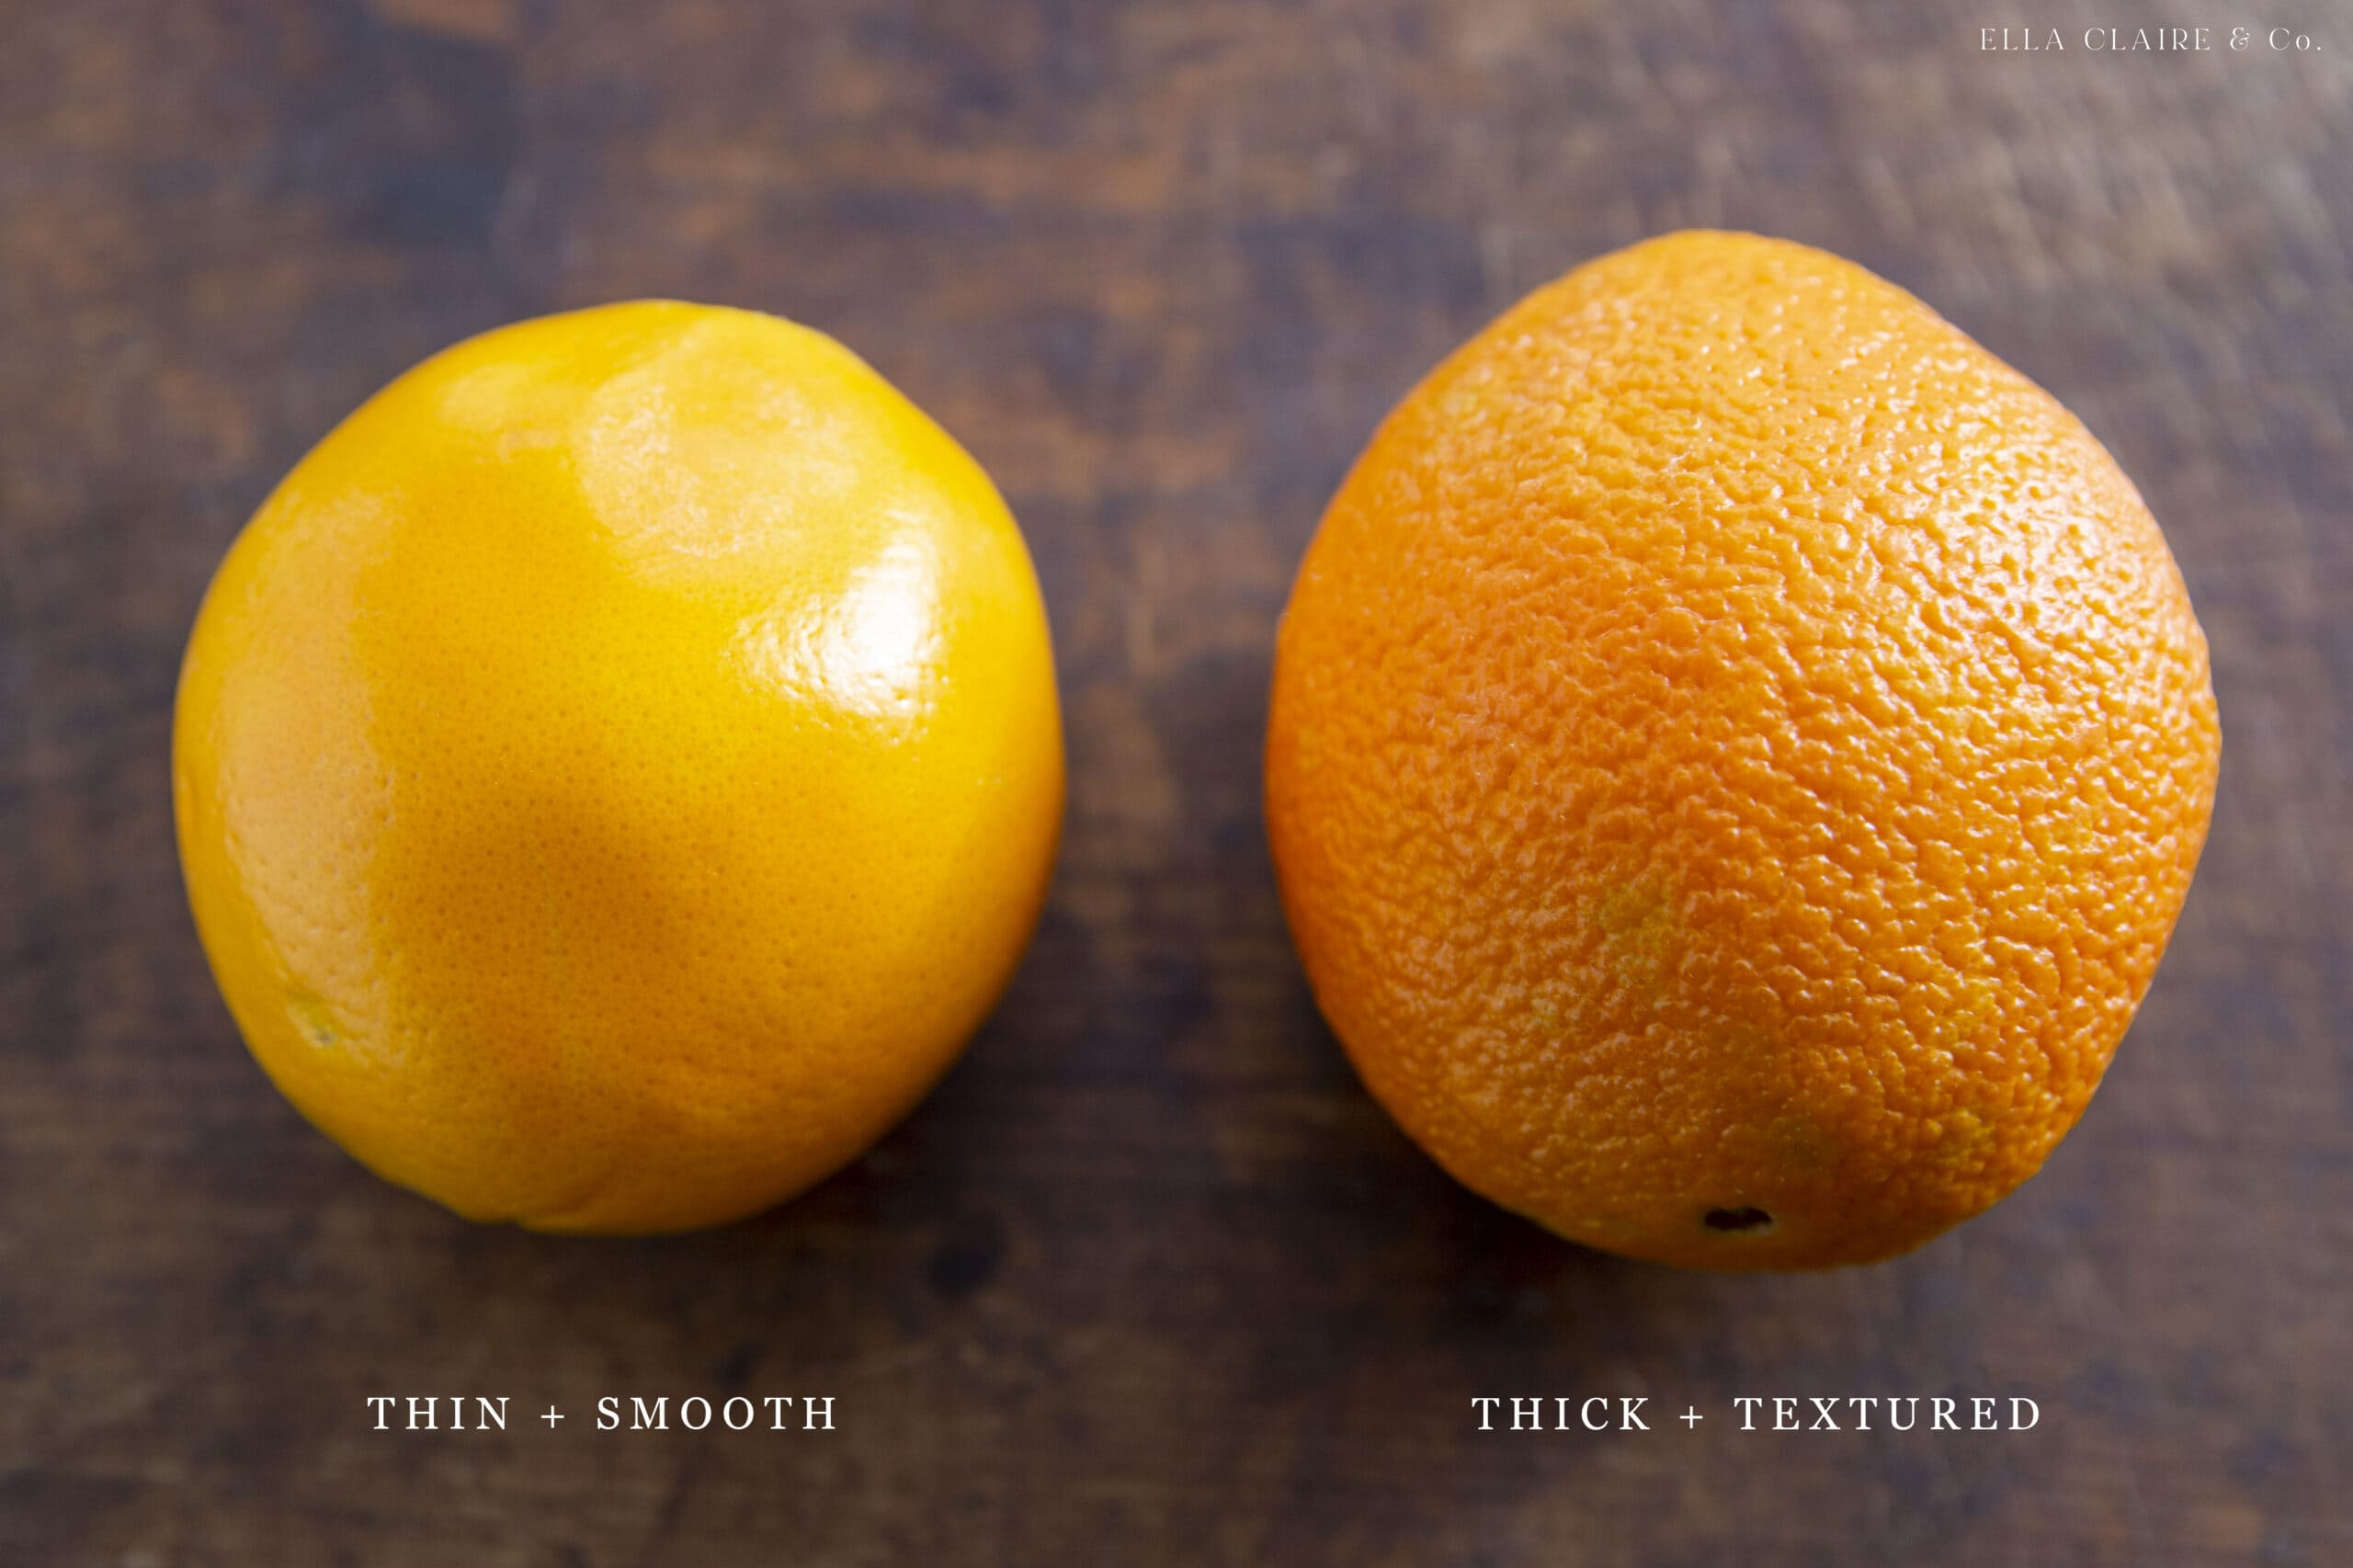 thin skin and thick skinned oranges